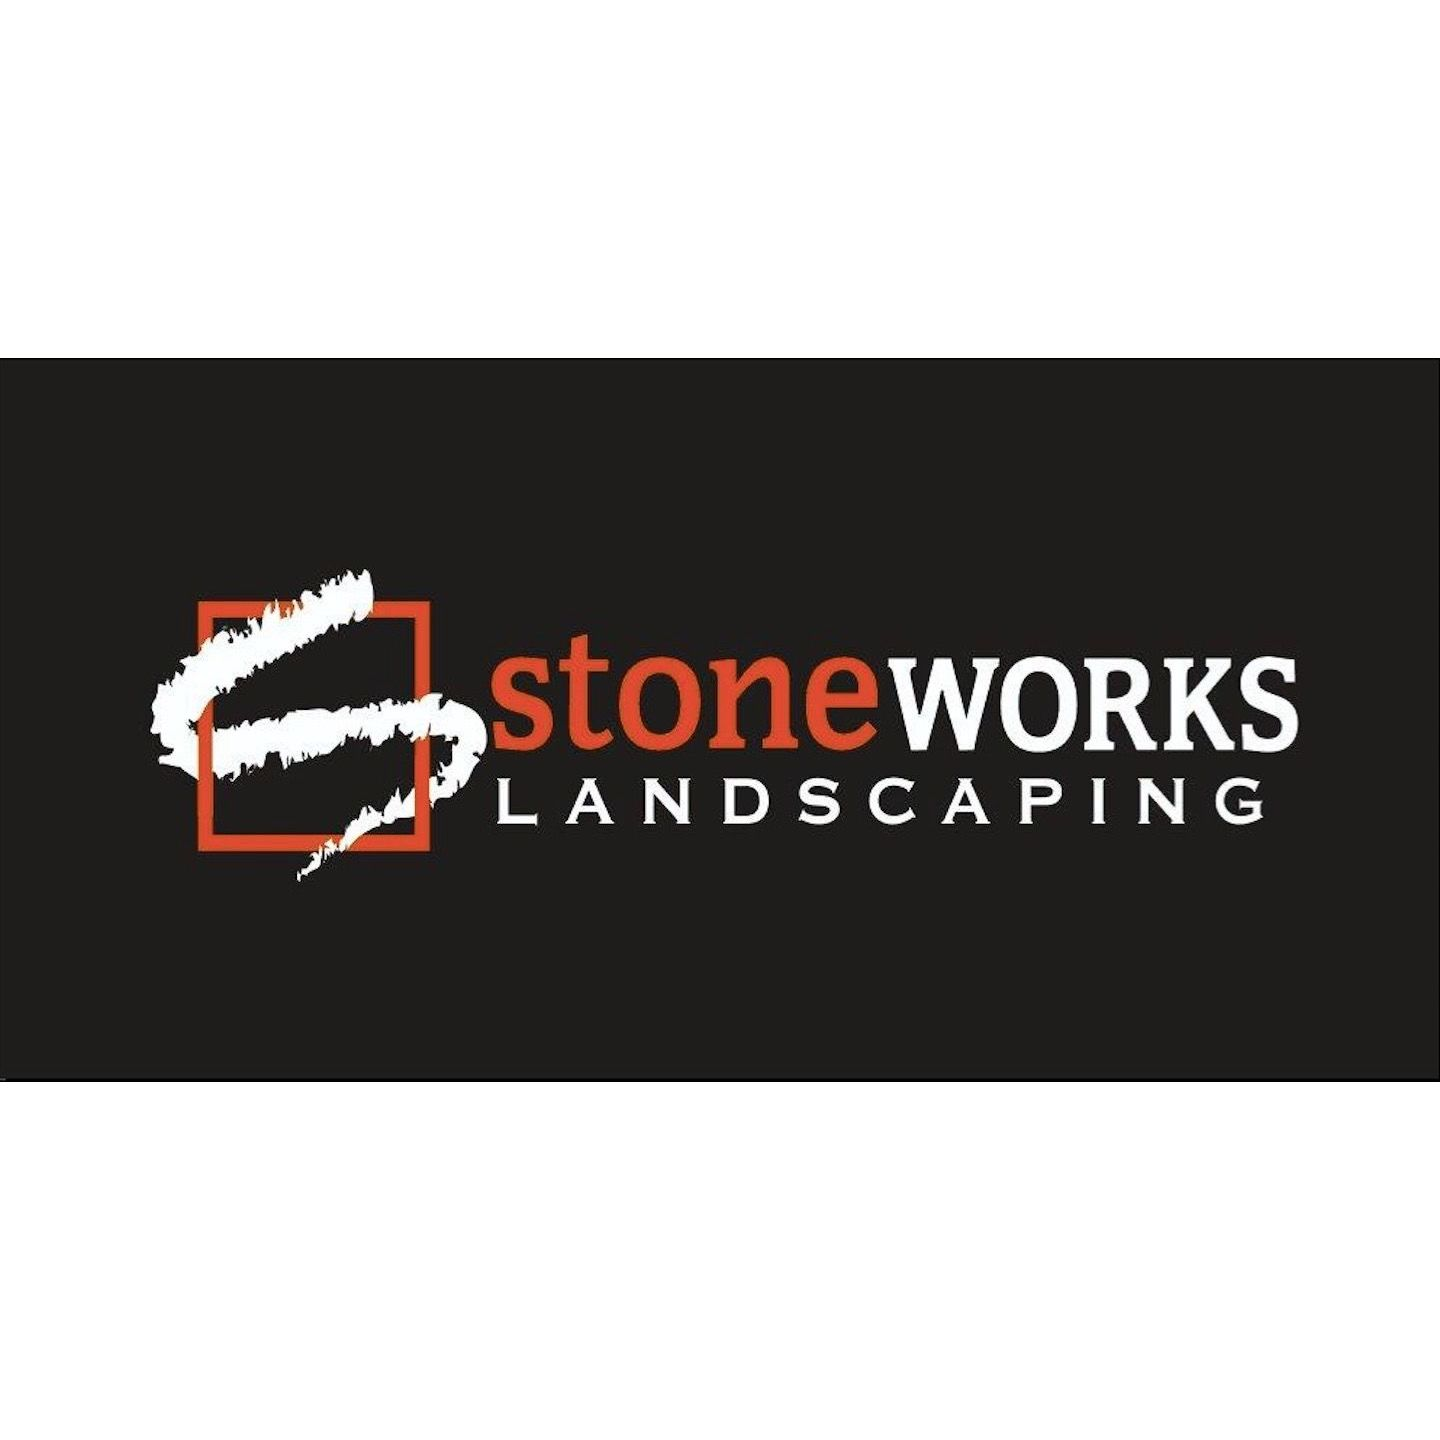 Stone Works Landscaping